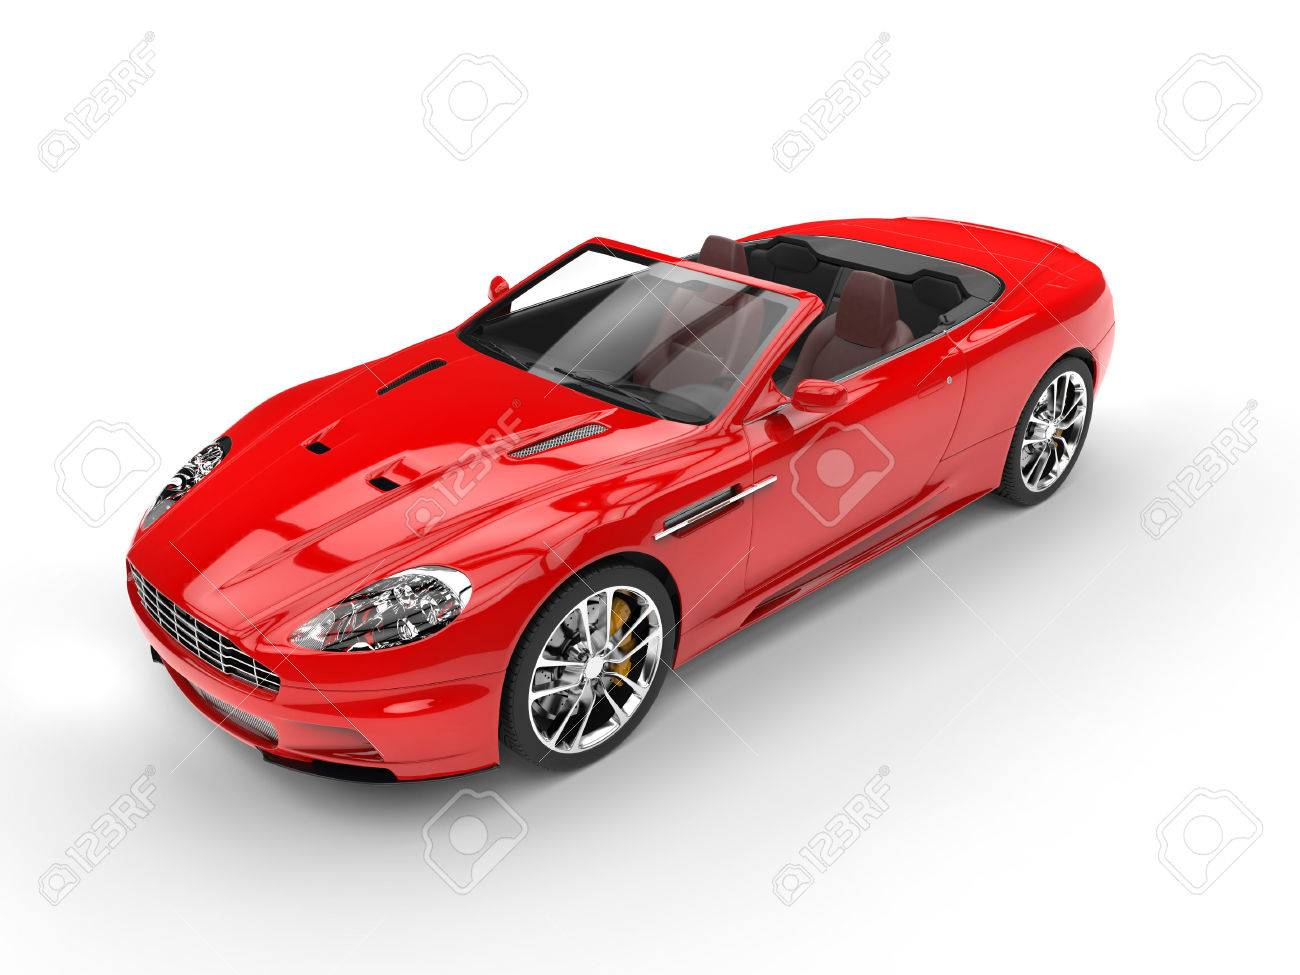 Red Convertible Sports Car Top View Stock Photo Picture And Royalty Free Image Image 54729825